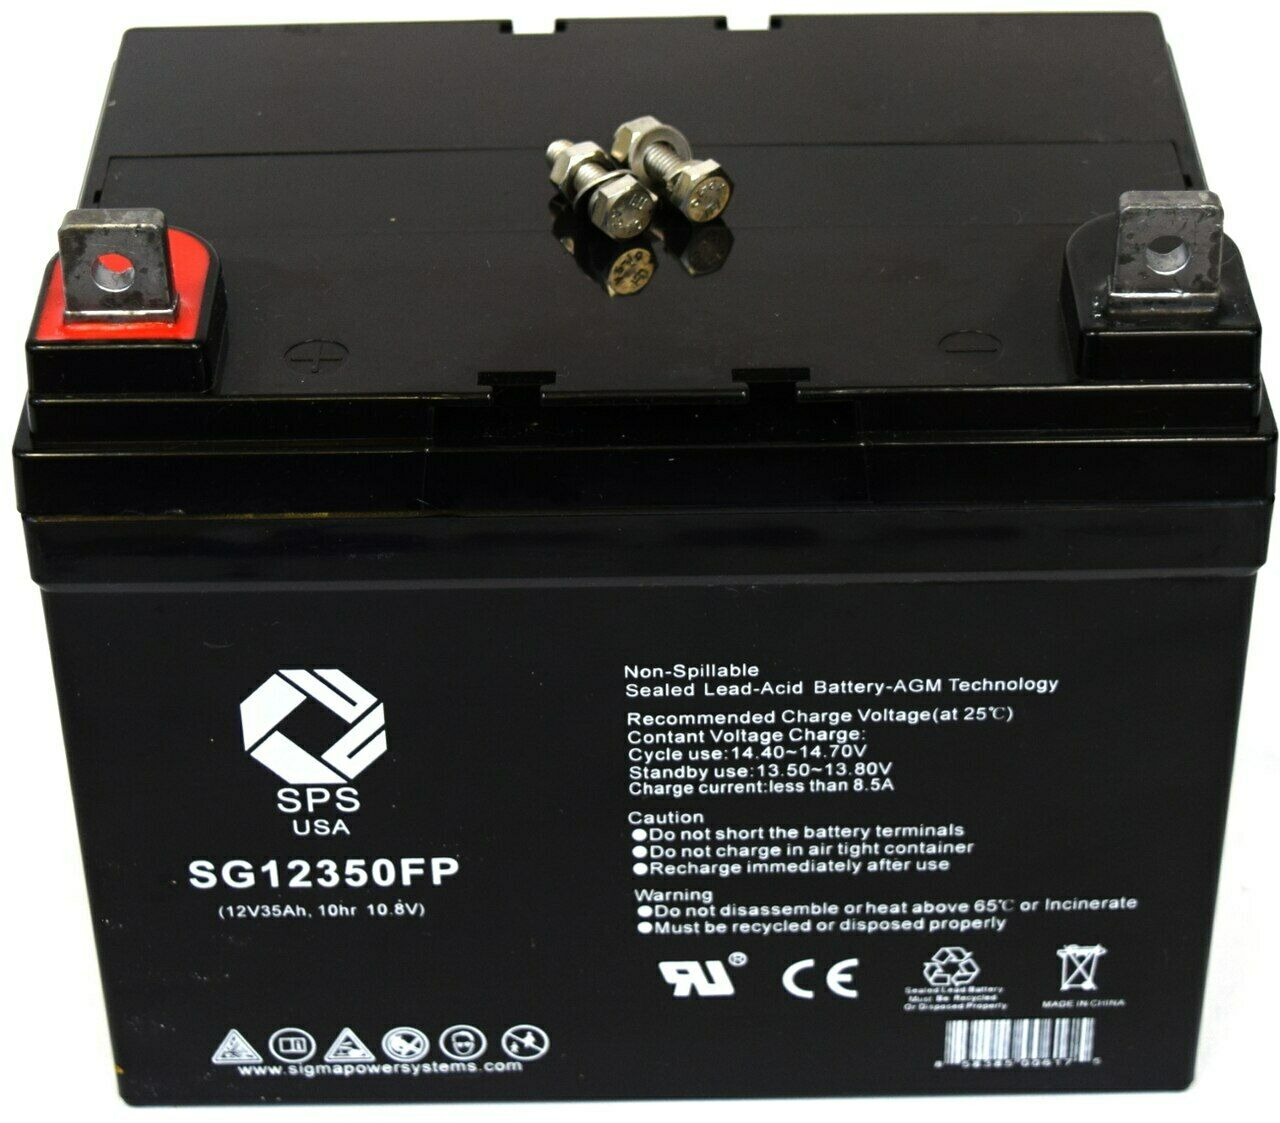 SPS Brand 12V 35Ah battery for Shoprider Mobility 888 4 wheelchair scooter